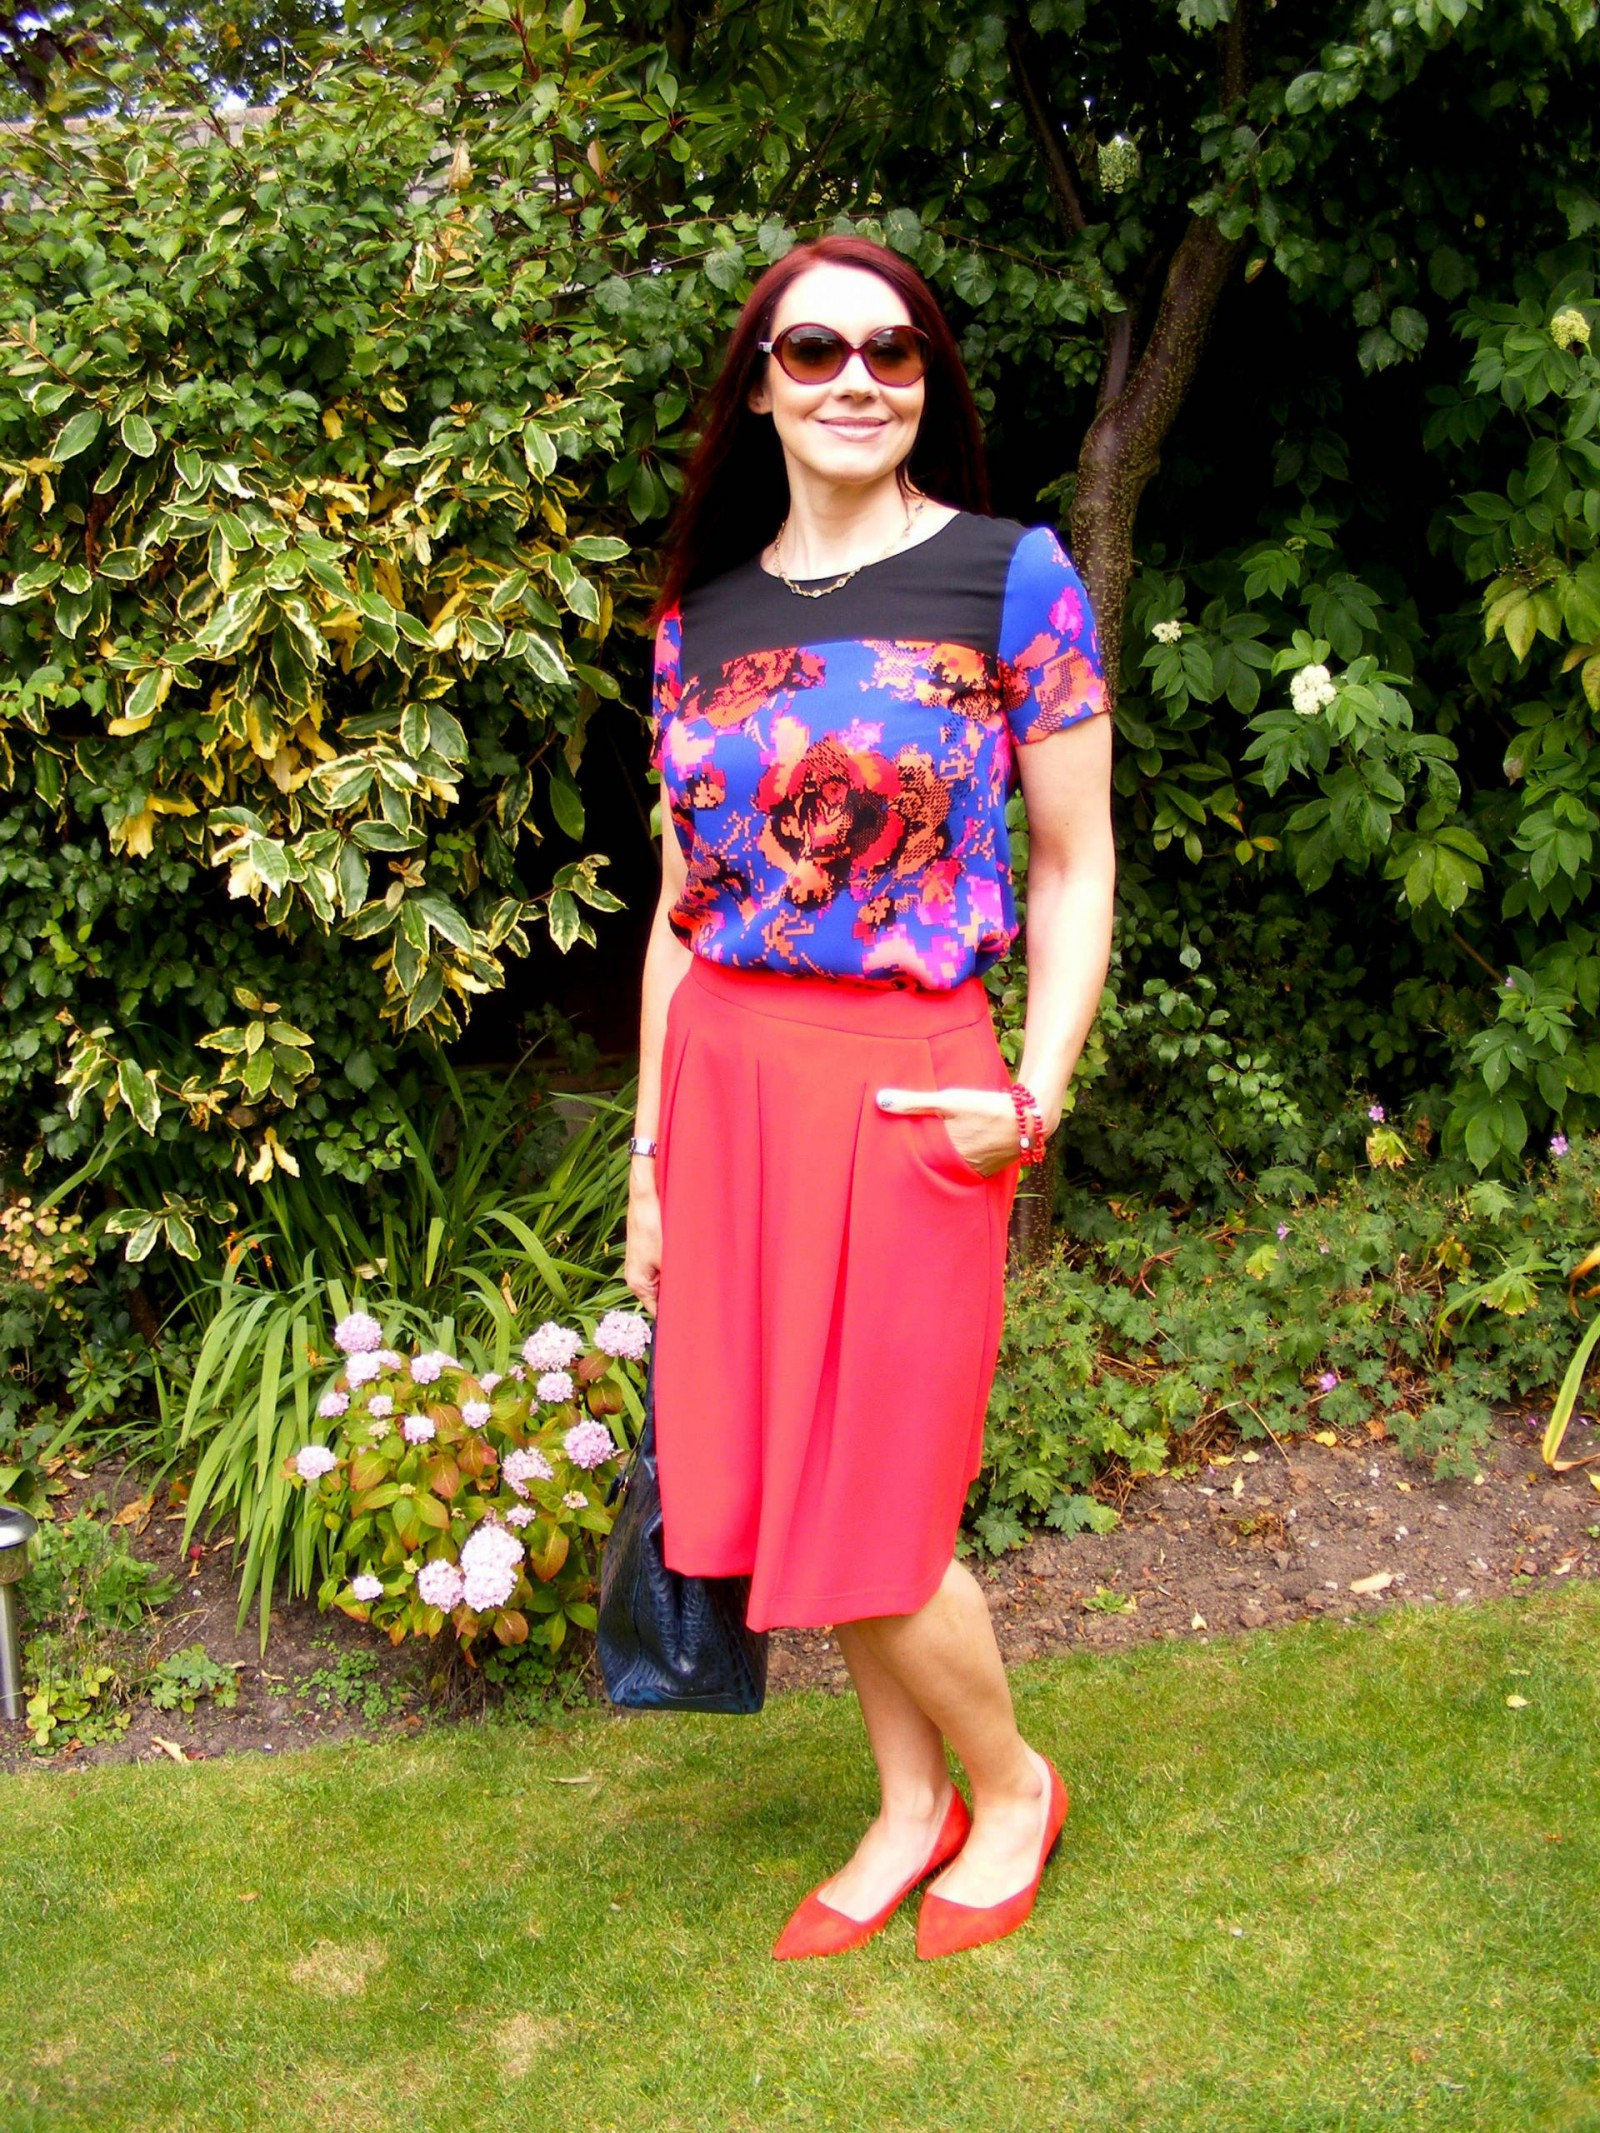 M&S pixel print top and red Buttonsafe skirt